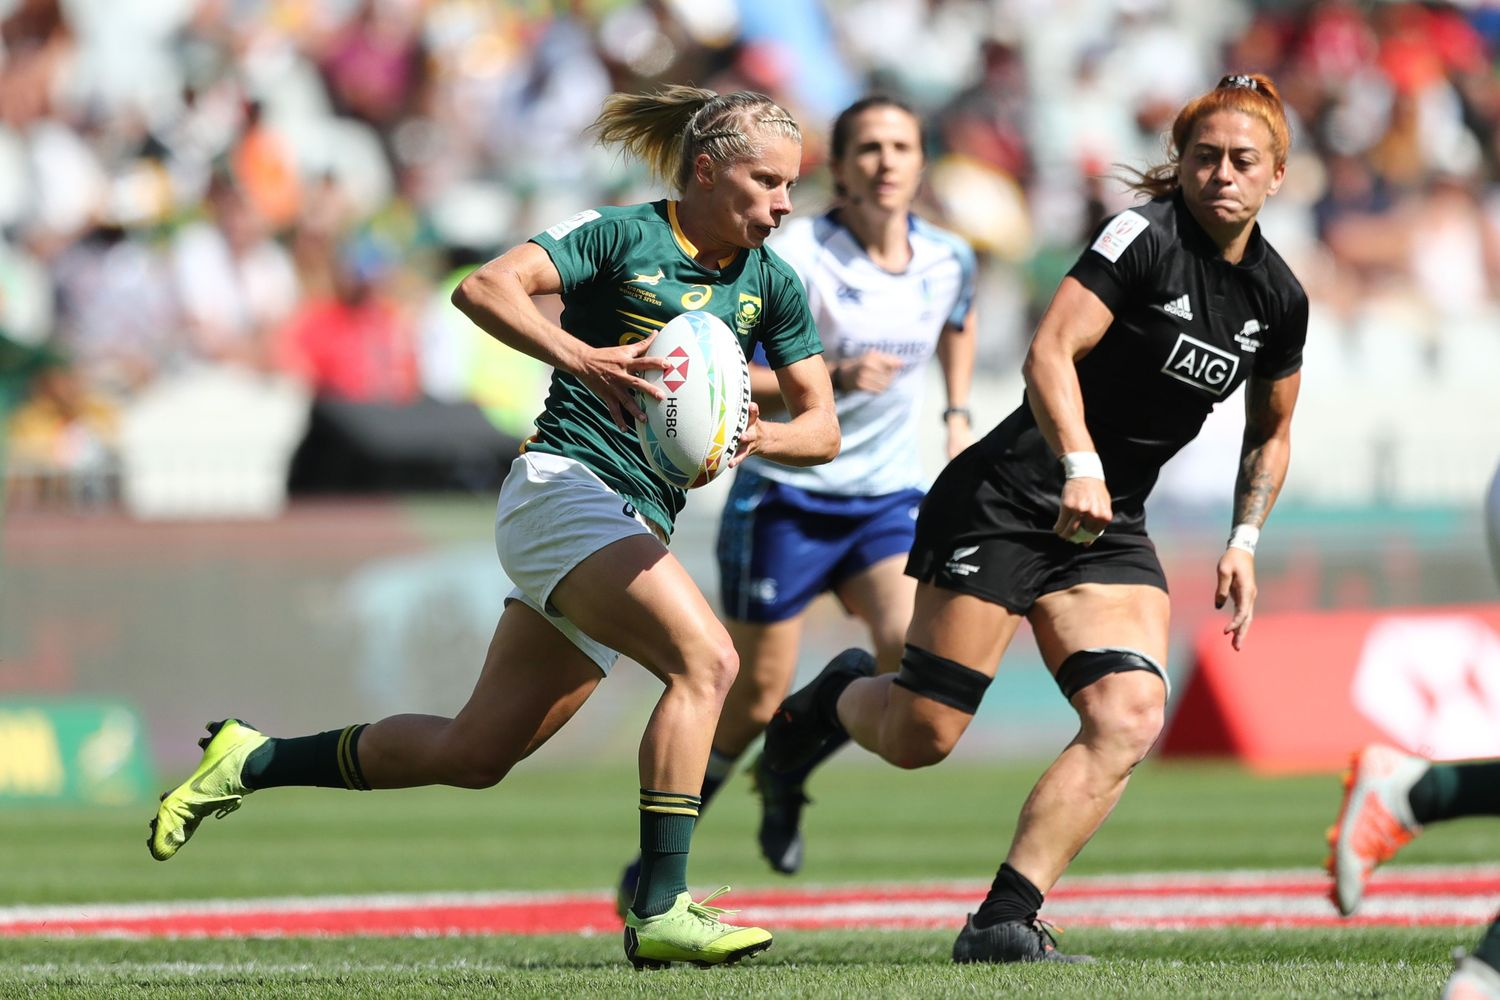 HSBC Cape Town Sevens 2019 - Women's